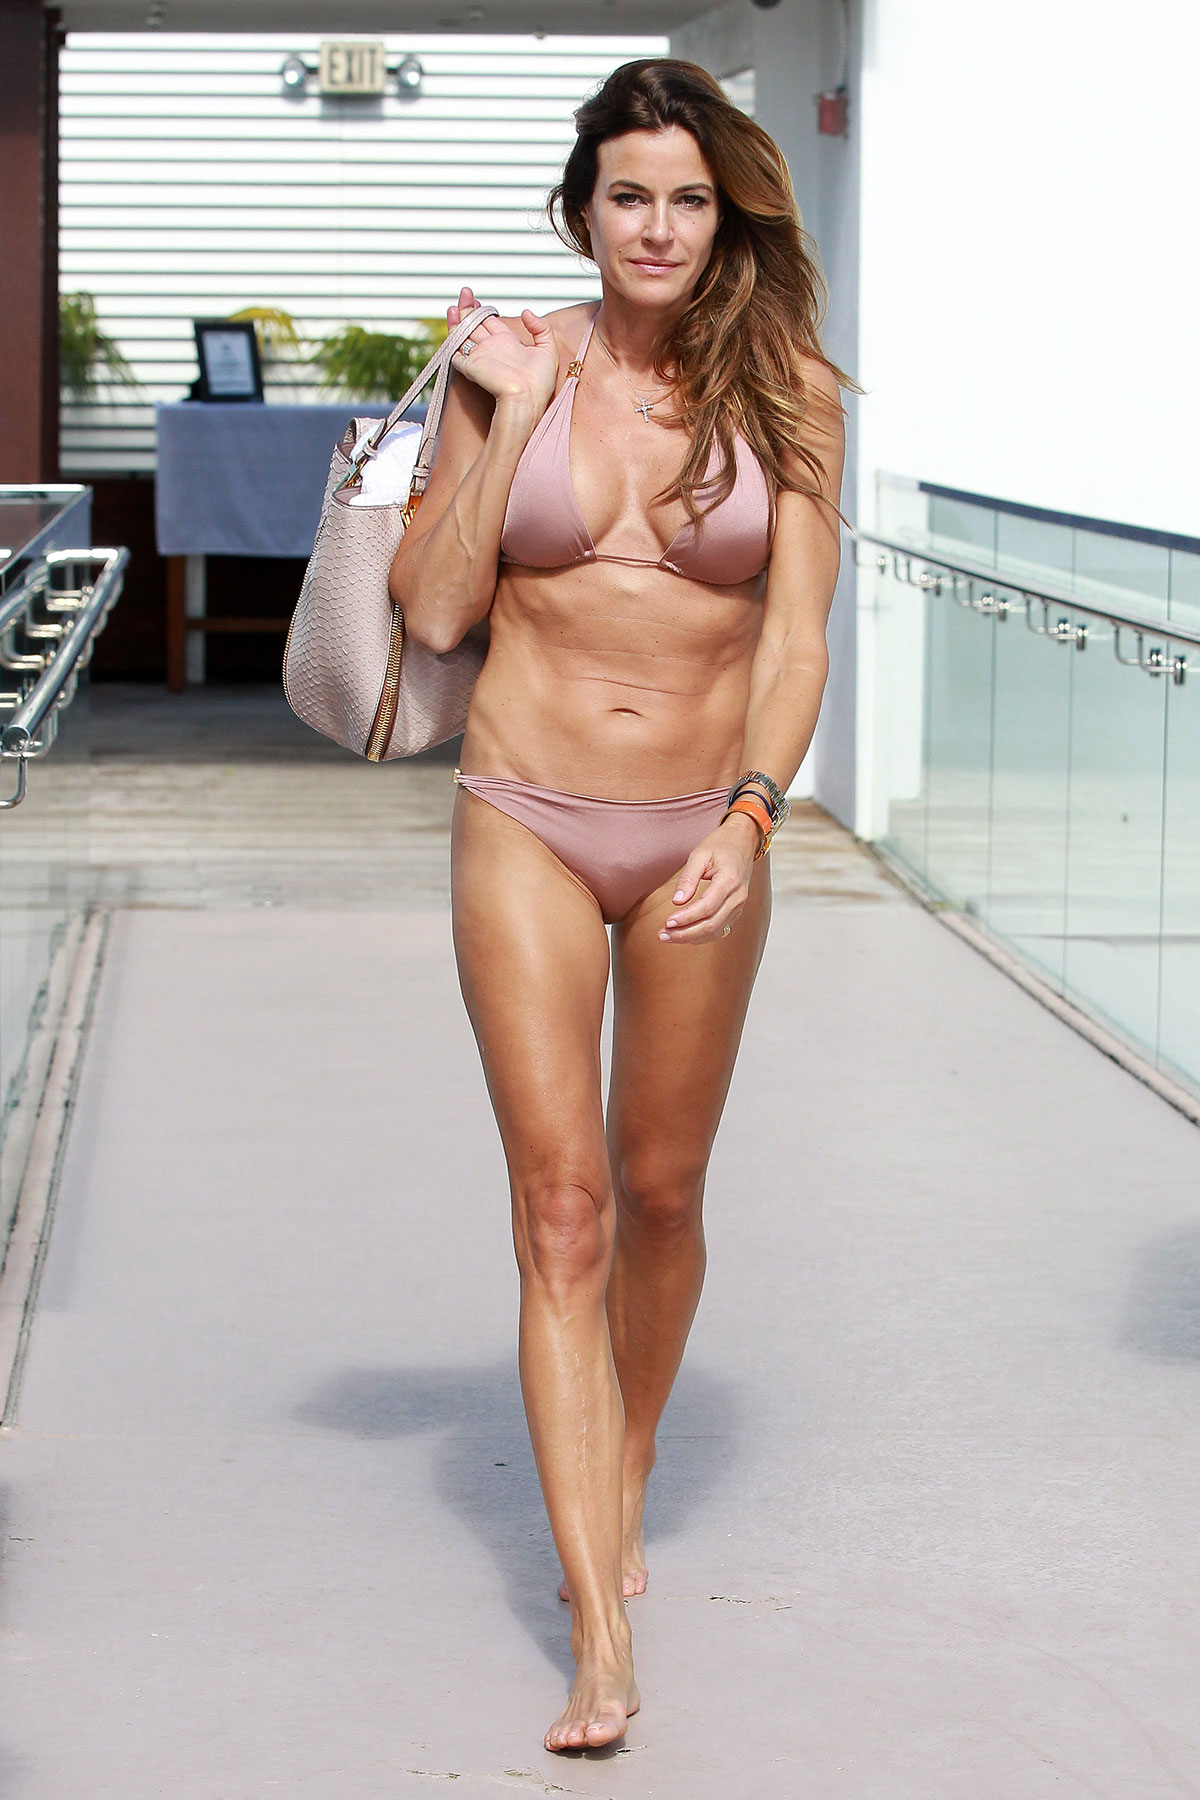 Kelly bensimon nude pitcutres